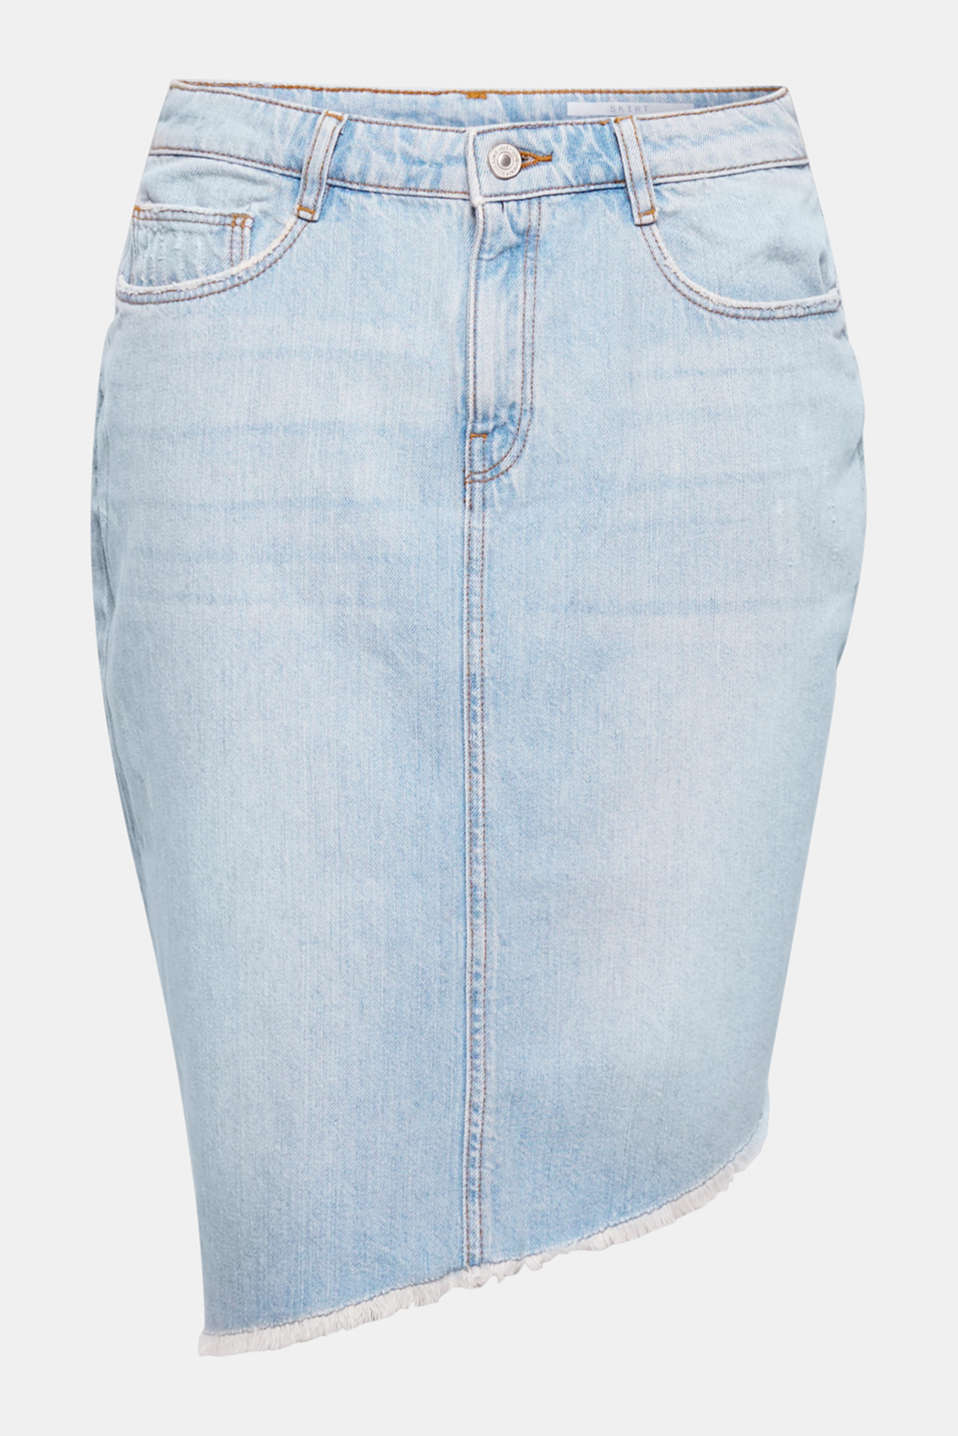 Light denim with ripped effects and an asymmetric frayed hem give this denim skirt a trendy rock aesthetic!